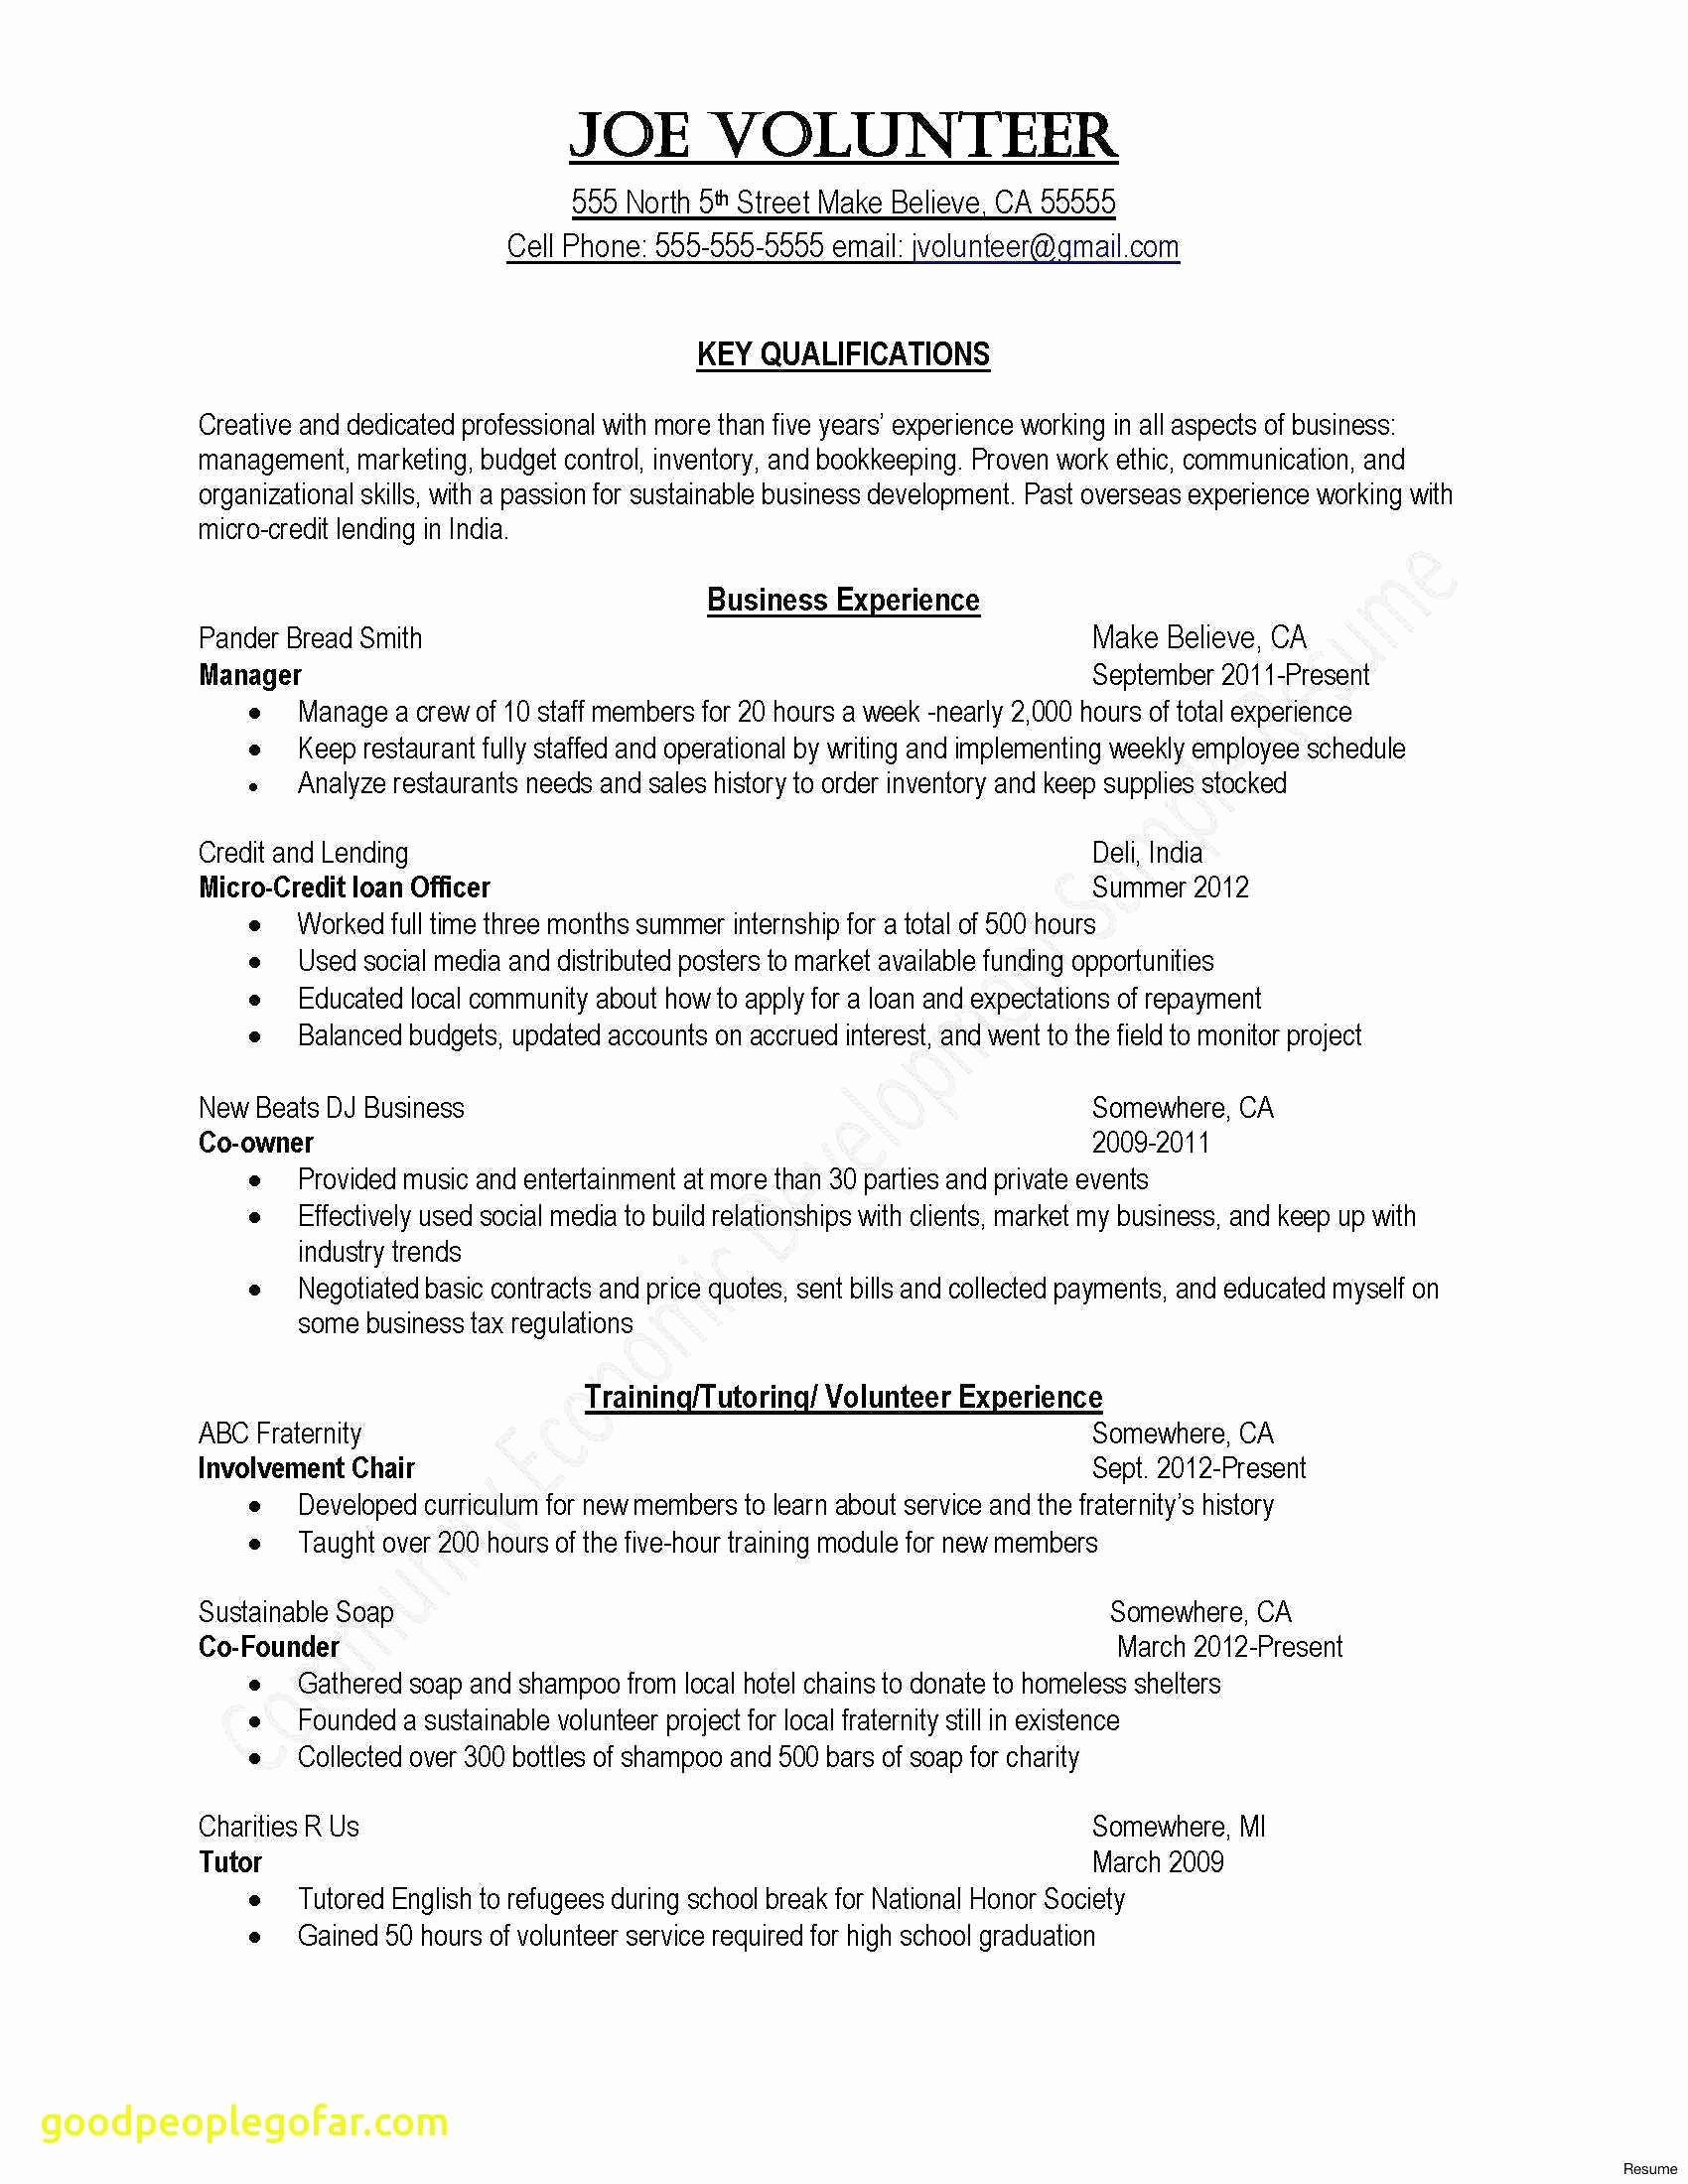 dj resume template download Collection-Free Resumes Templates To Download Awesome 19 Fresh Gallery Free Resume Templates To Download 20-d